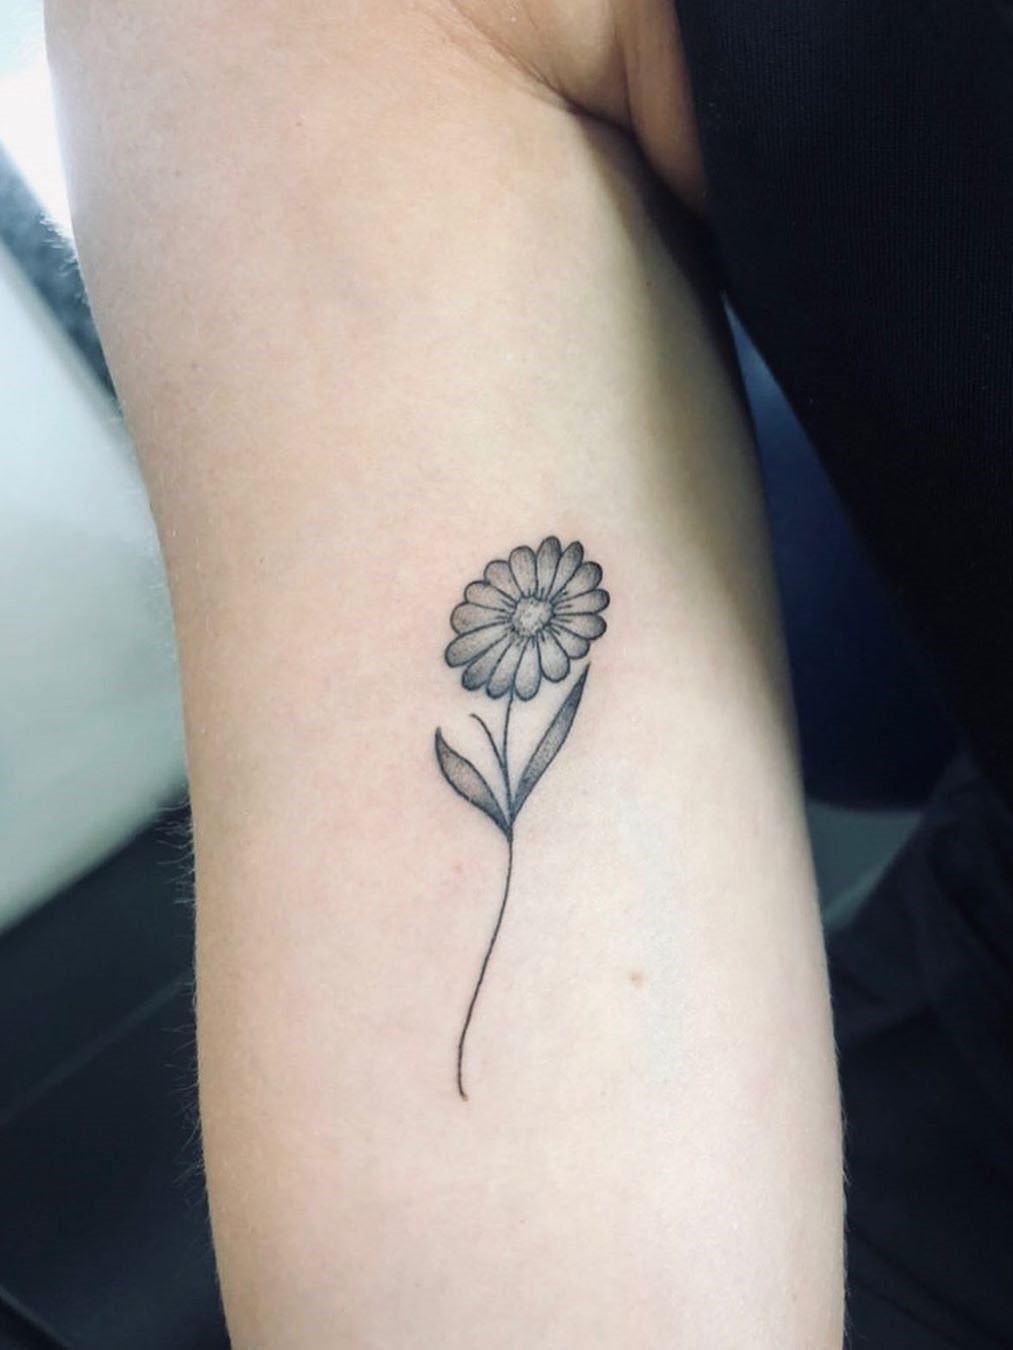 To show you how fashion these small tattoos can be, we have found 50 of the best simple tattoo designs. Whether you like finger or arm tattoos, you will find ideas to suit you. #smalltattoos #tinytattoos